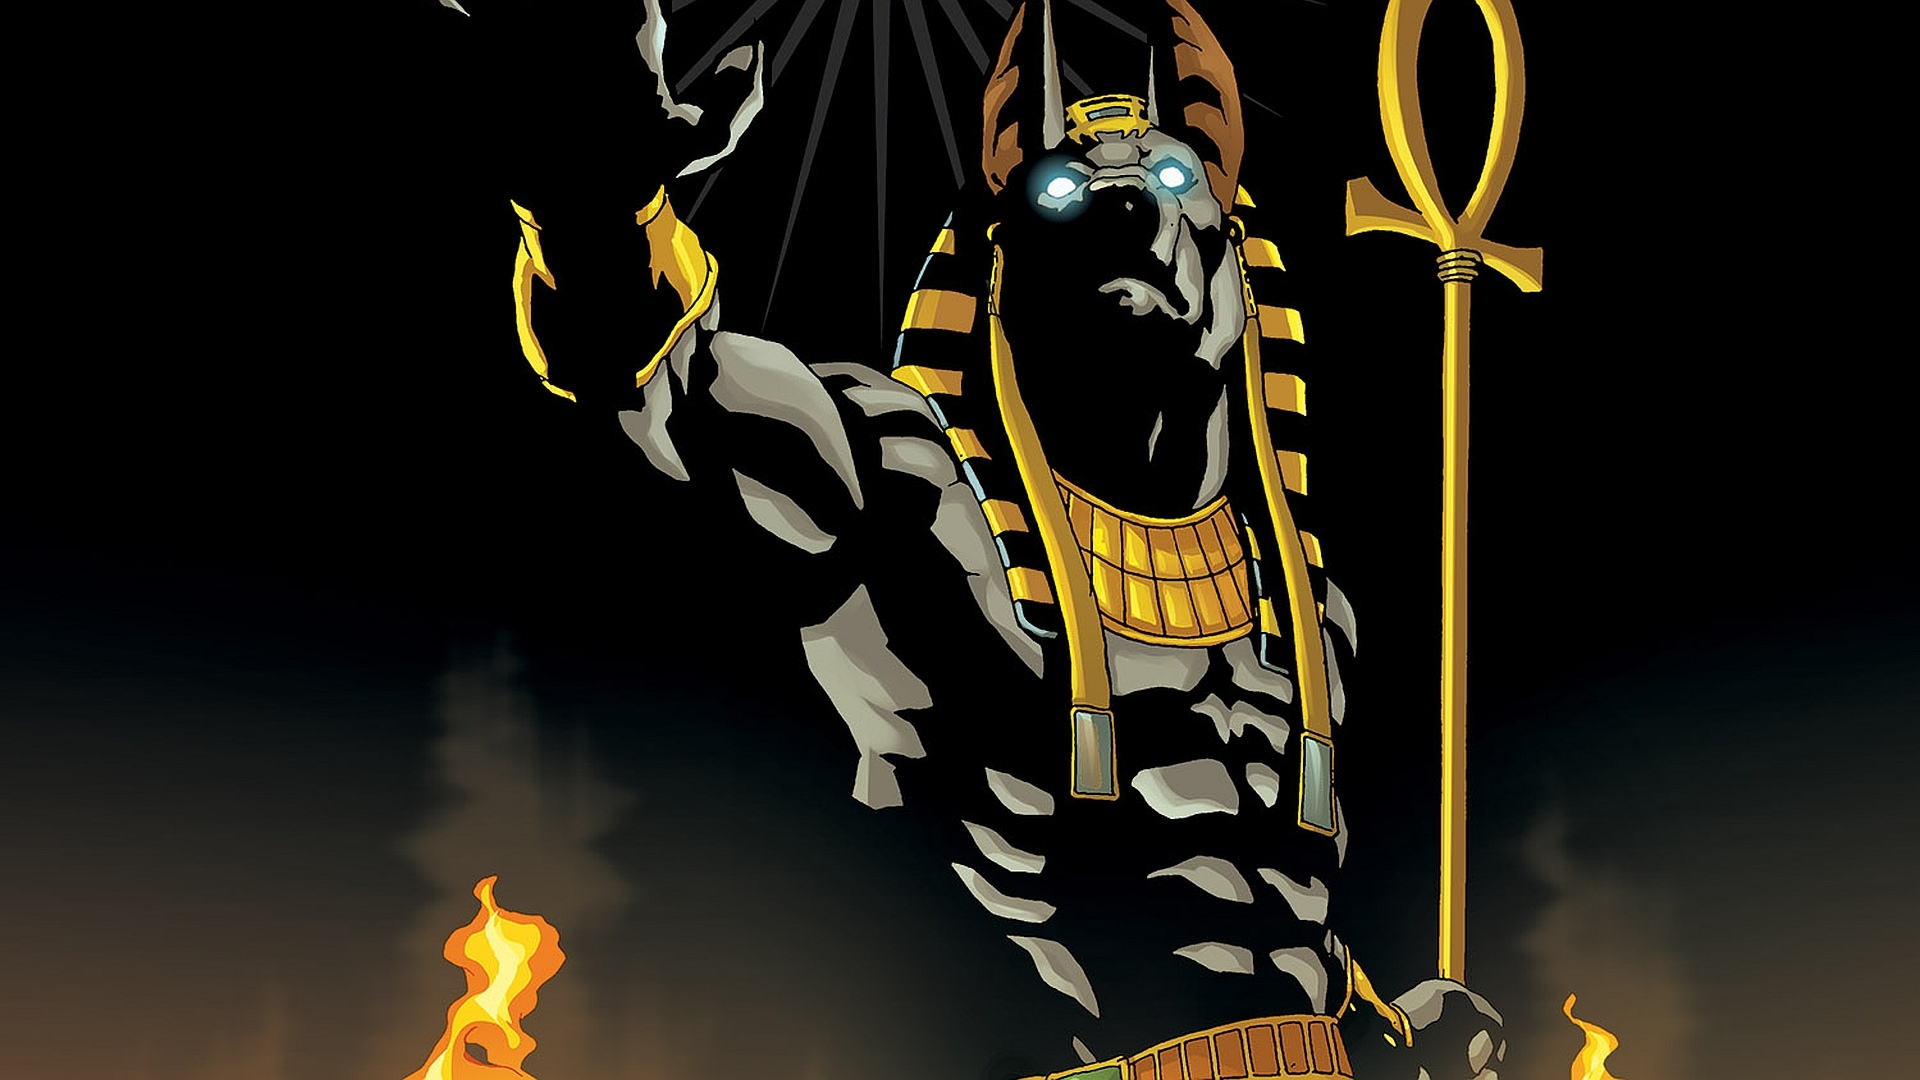 anubis wallpaper for pc - photo #7